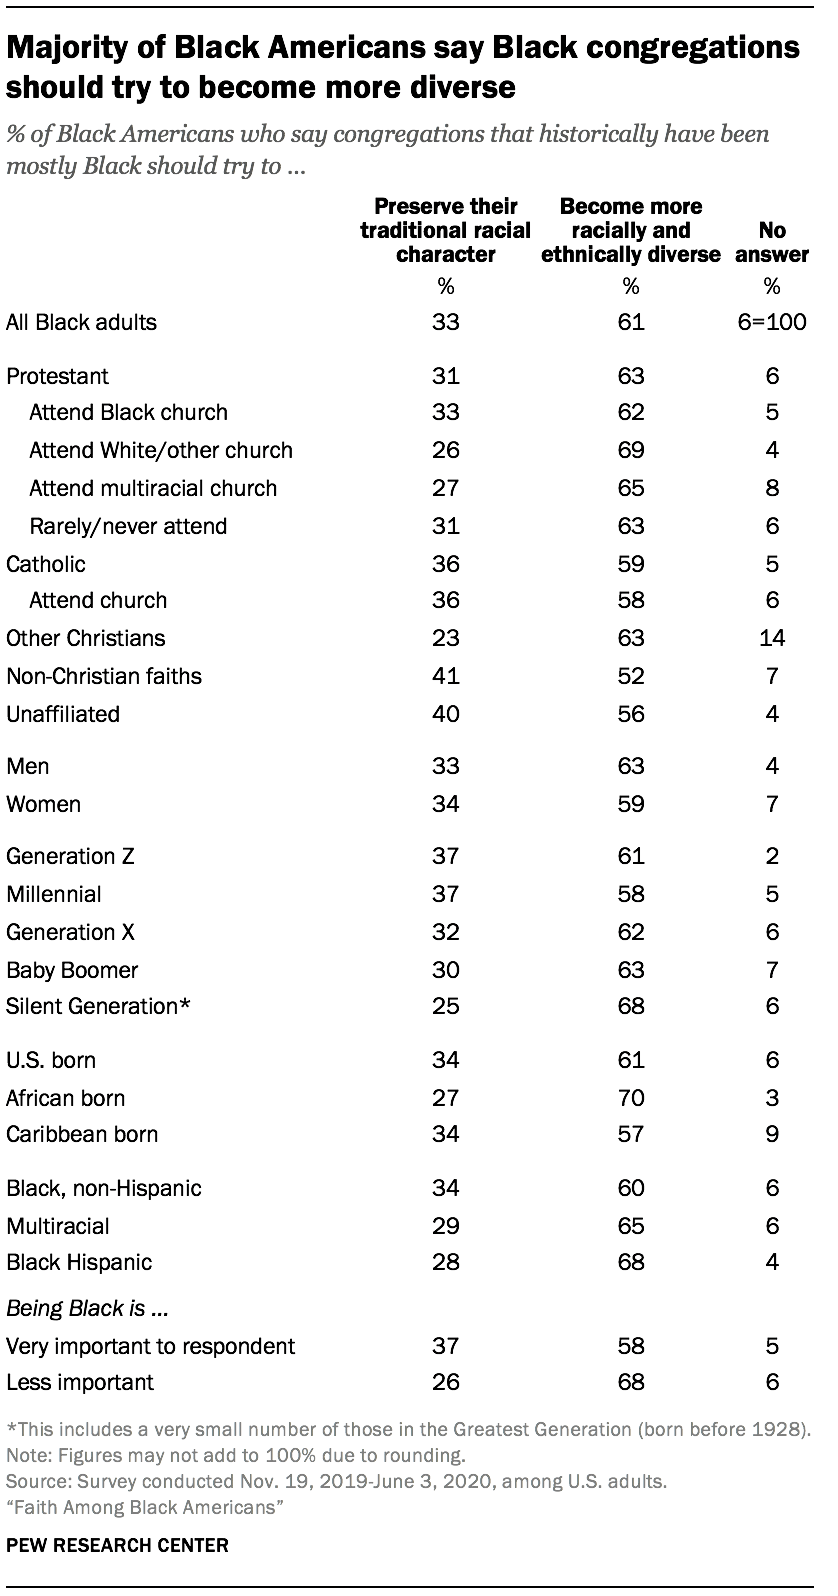 Majority of Black Americans say Black congregations should try to become more diverse